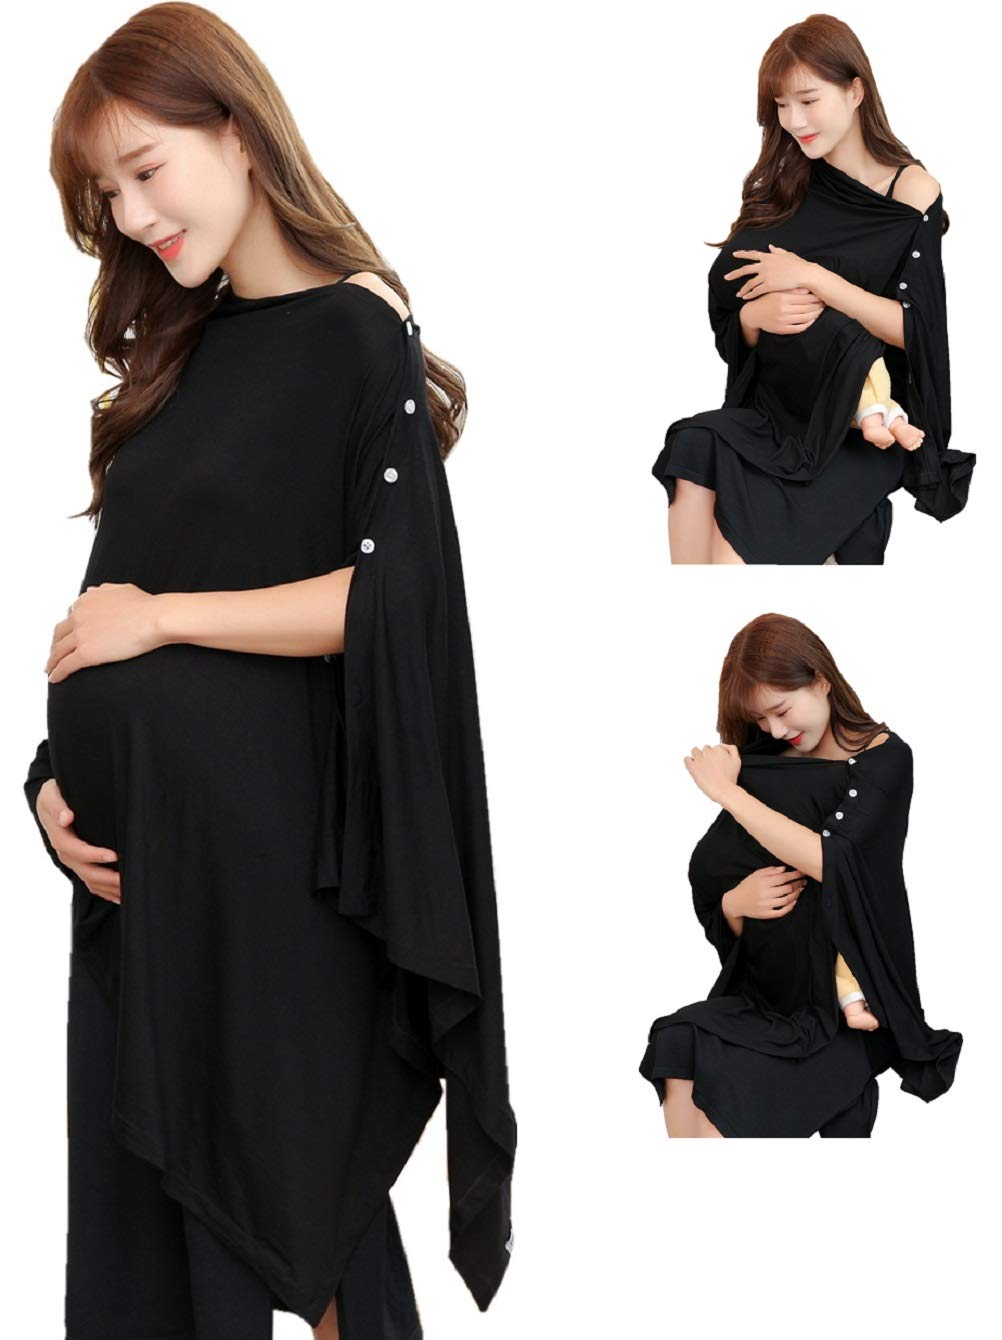 Black Nursing Cover Poncho for Breastfeeding Nursing Shawl Cover Ups Maternity Pregnancy Poncho Adjustable Buttons Breathable Bamboo Perfect Gift Idea by TwoYek